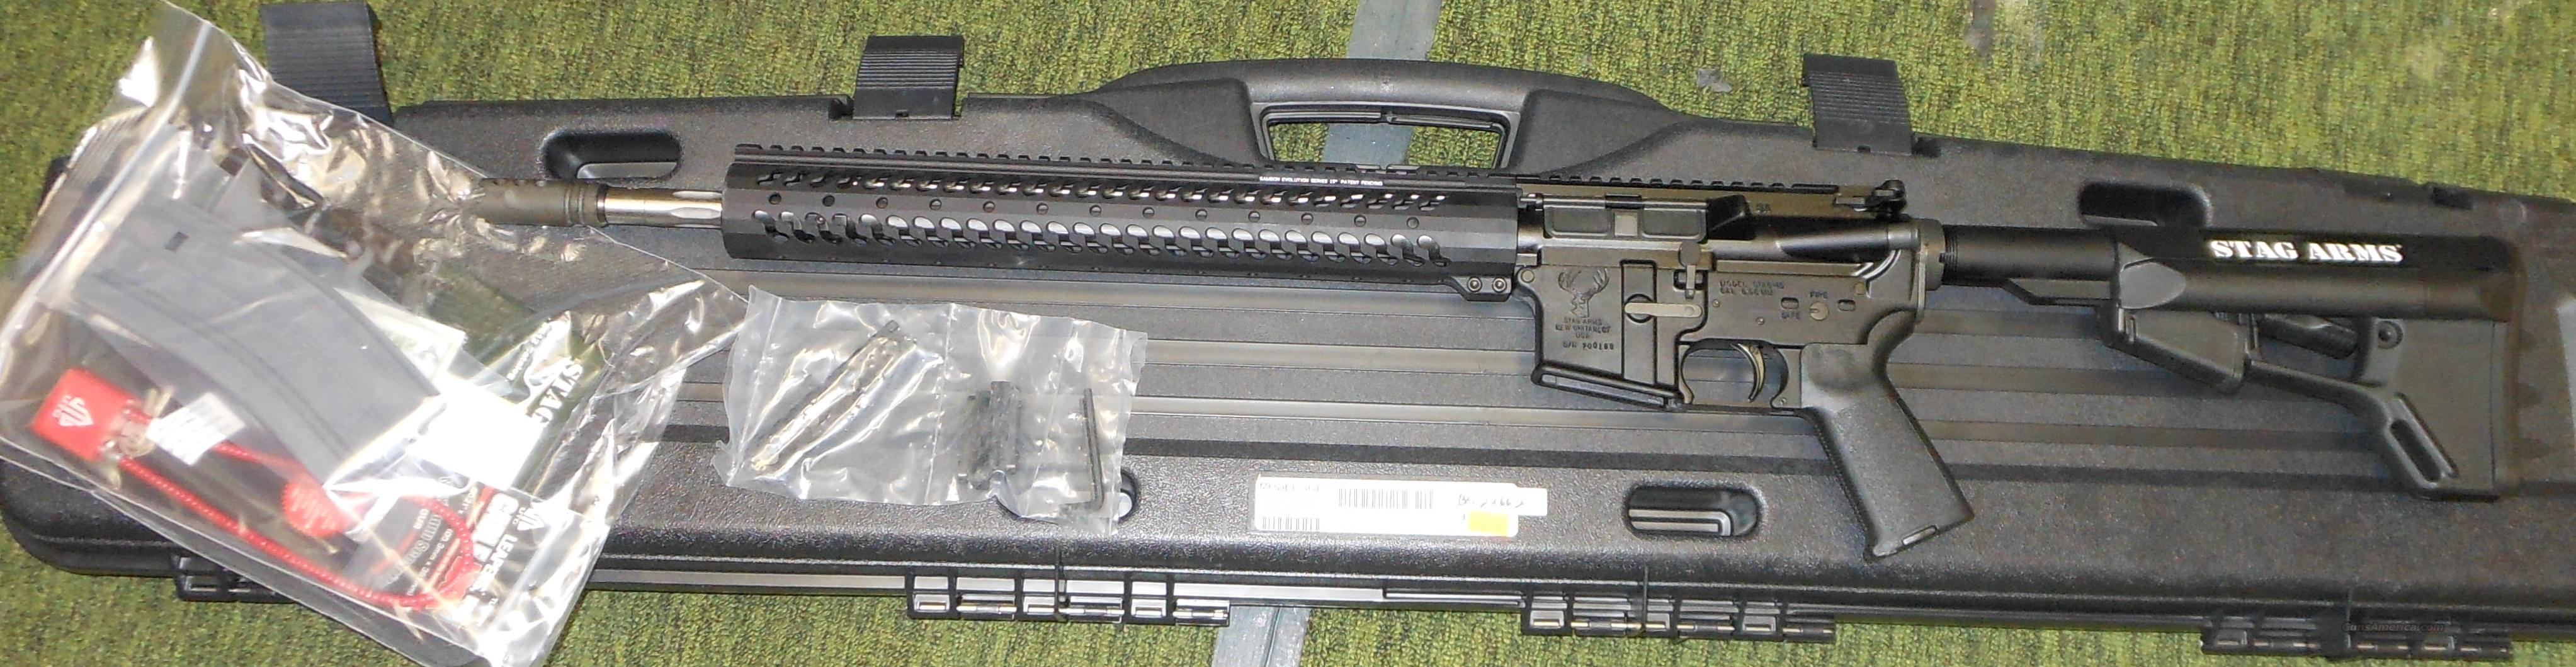 STAG 3GL 5.56 NATO AR RIFLE OPTIMIZED FOR 3 GUN COMPETITION *LEFT HANDED*  Guns > Rifles > Stag Arms > Complete Rifles